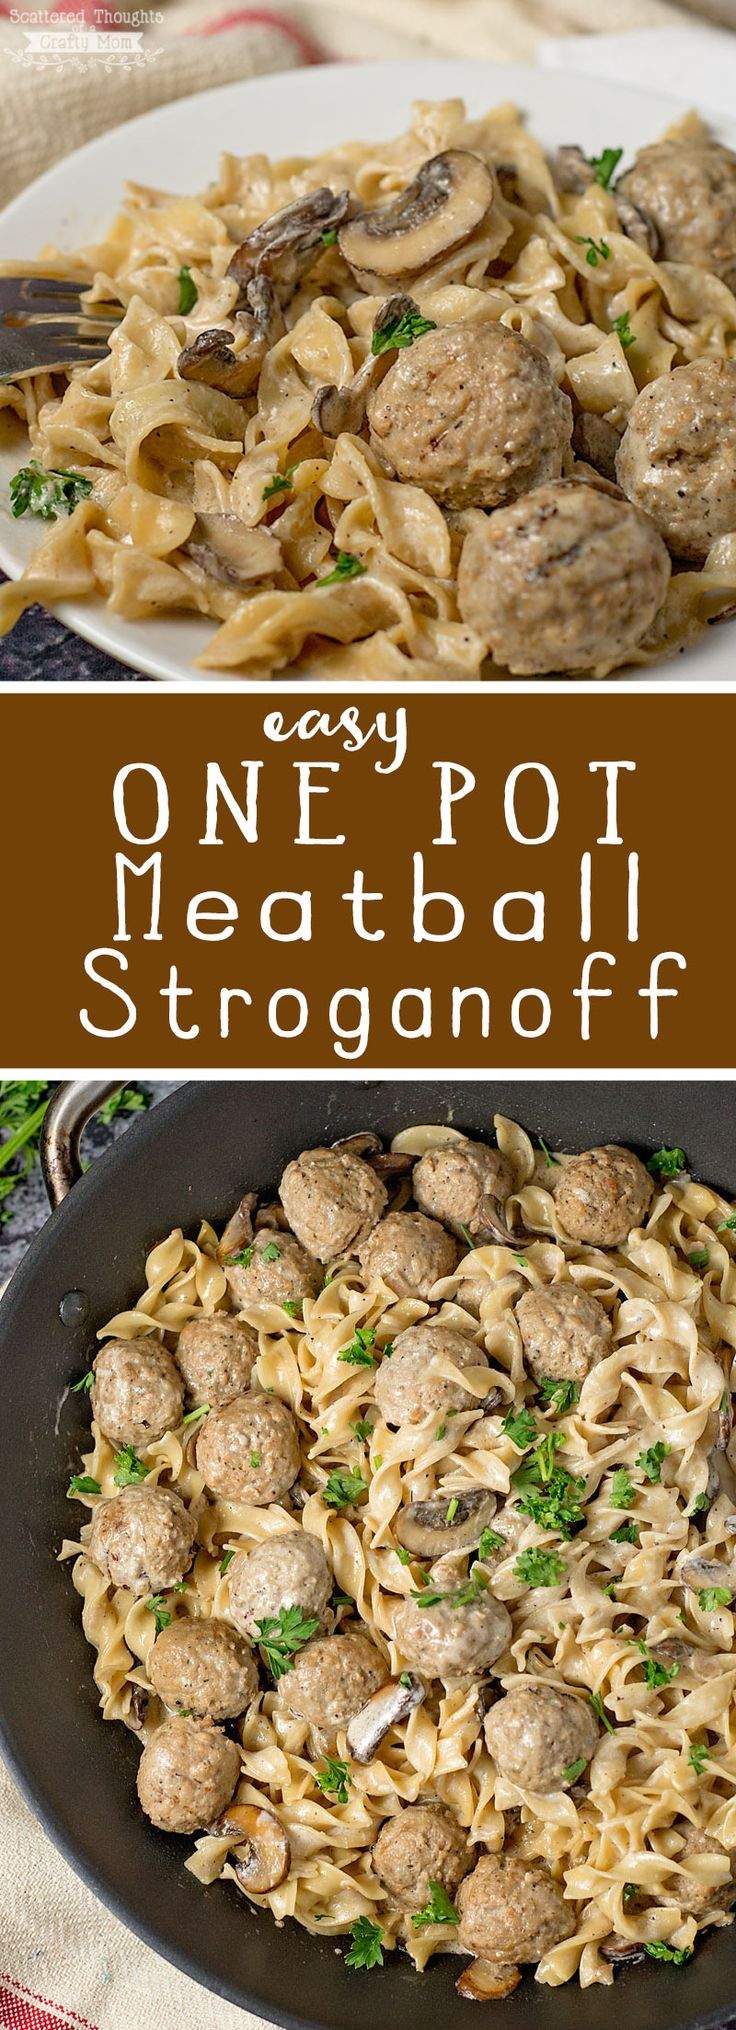 Easy One Pot Meatball Stroganoff (20 Minute Meal)    #20minutemeal #meatball stroganoff